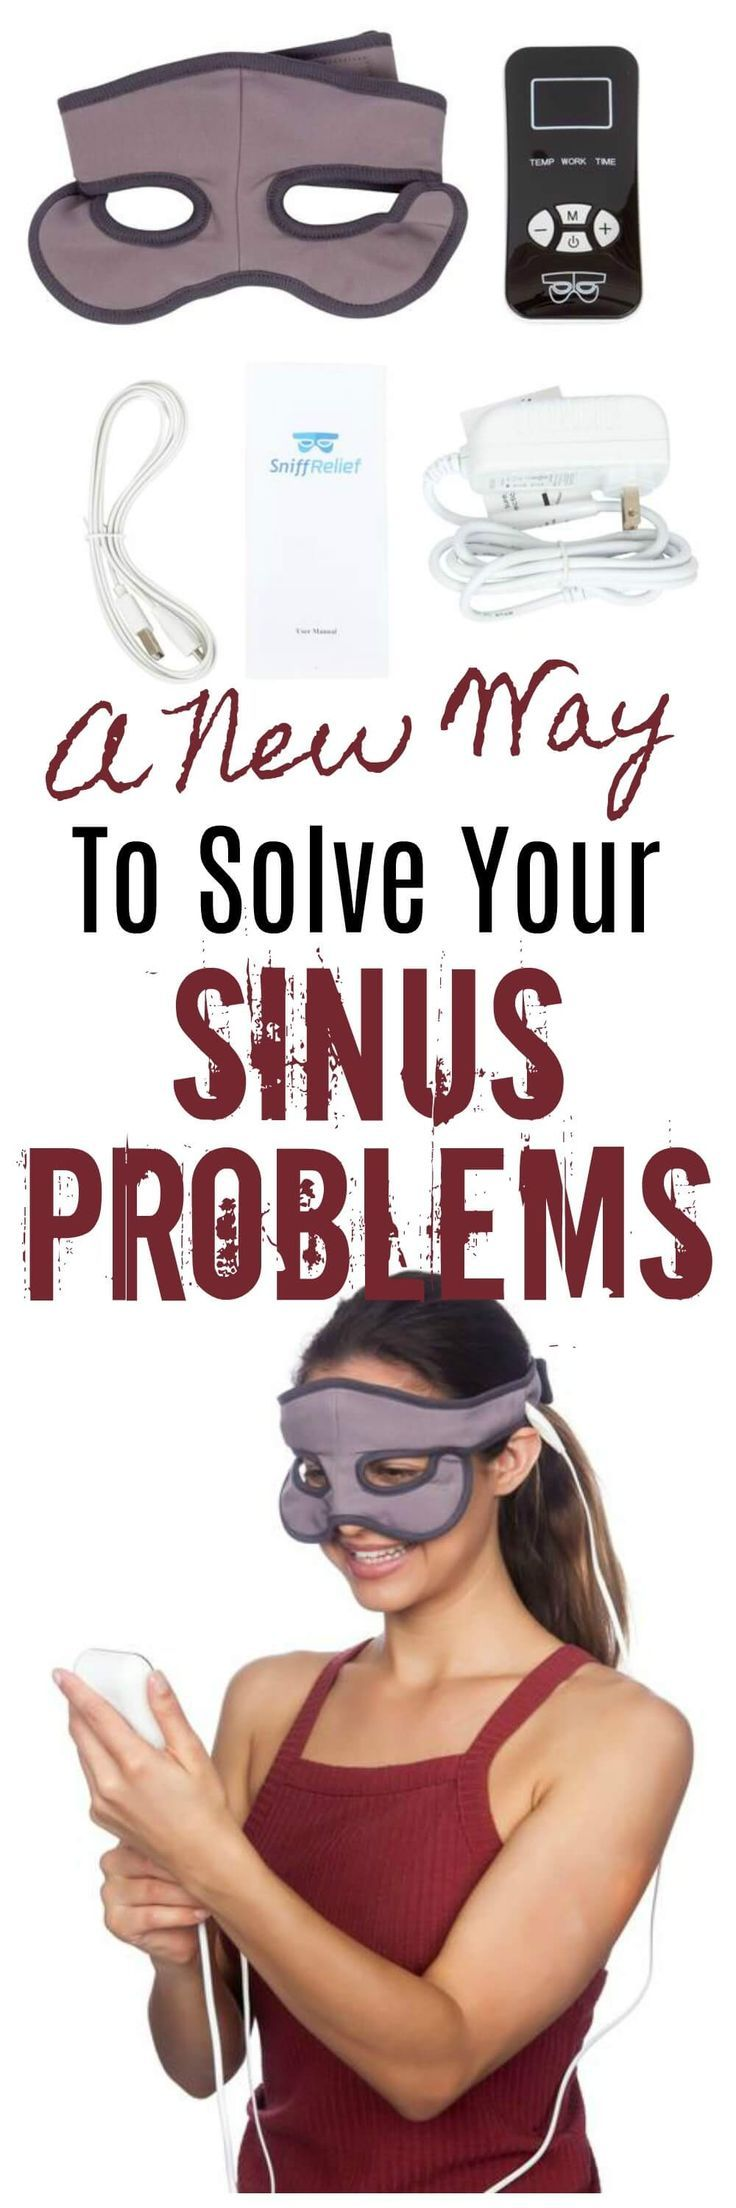 A New Way To Naturally Solve Your Sinus Problems - It's called Sniff Relief  @socialsniffreliefcom  #ad #coldandflu